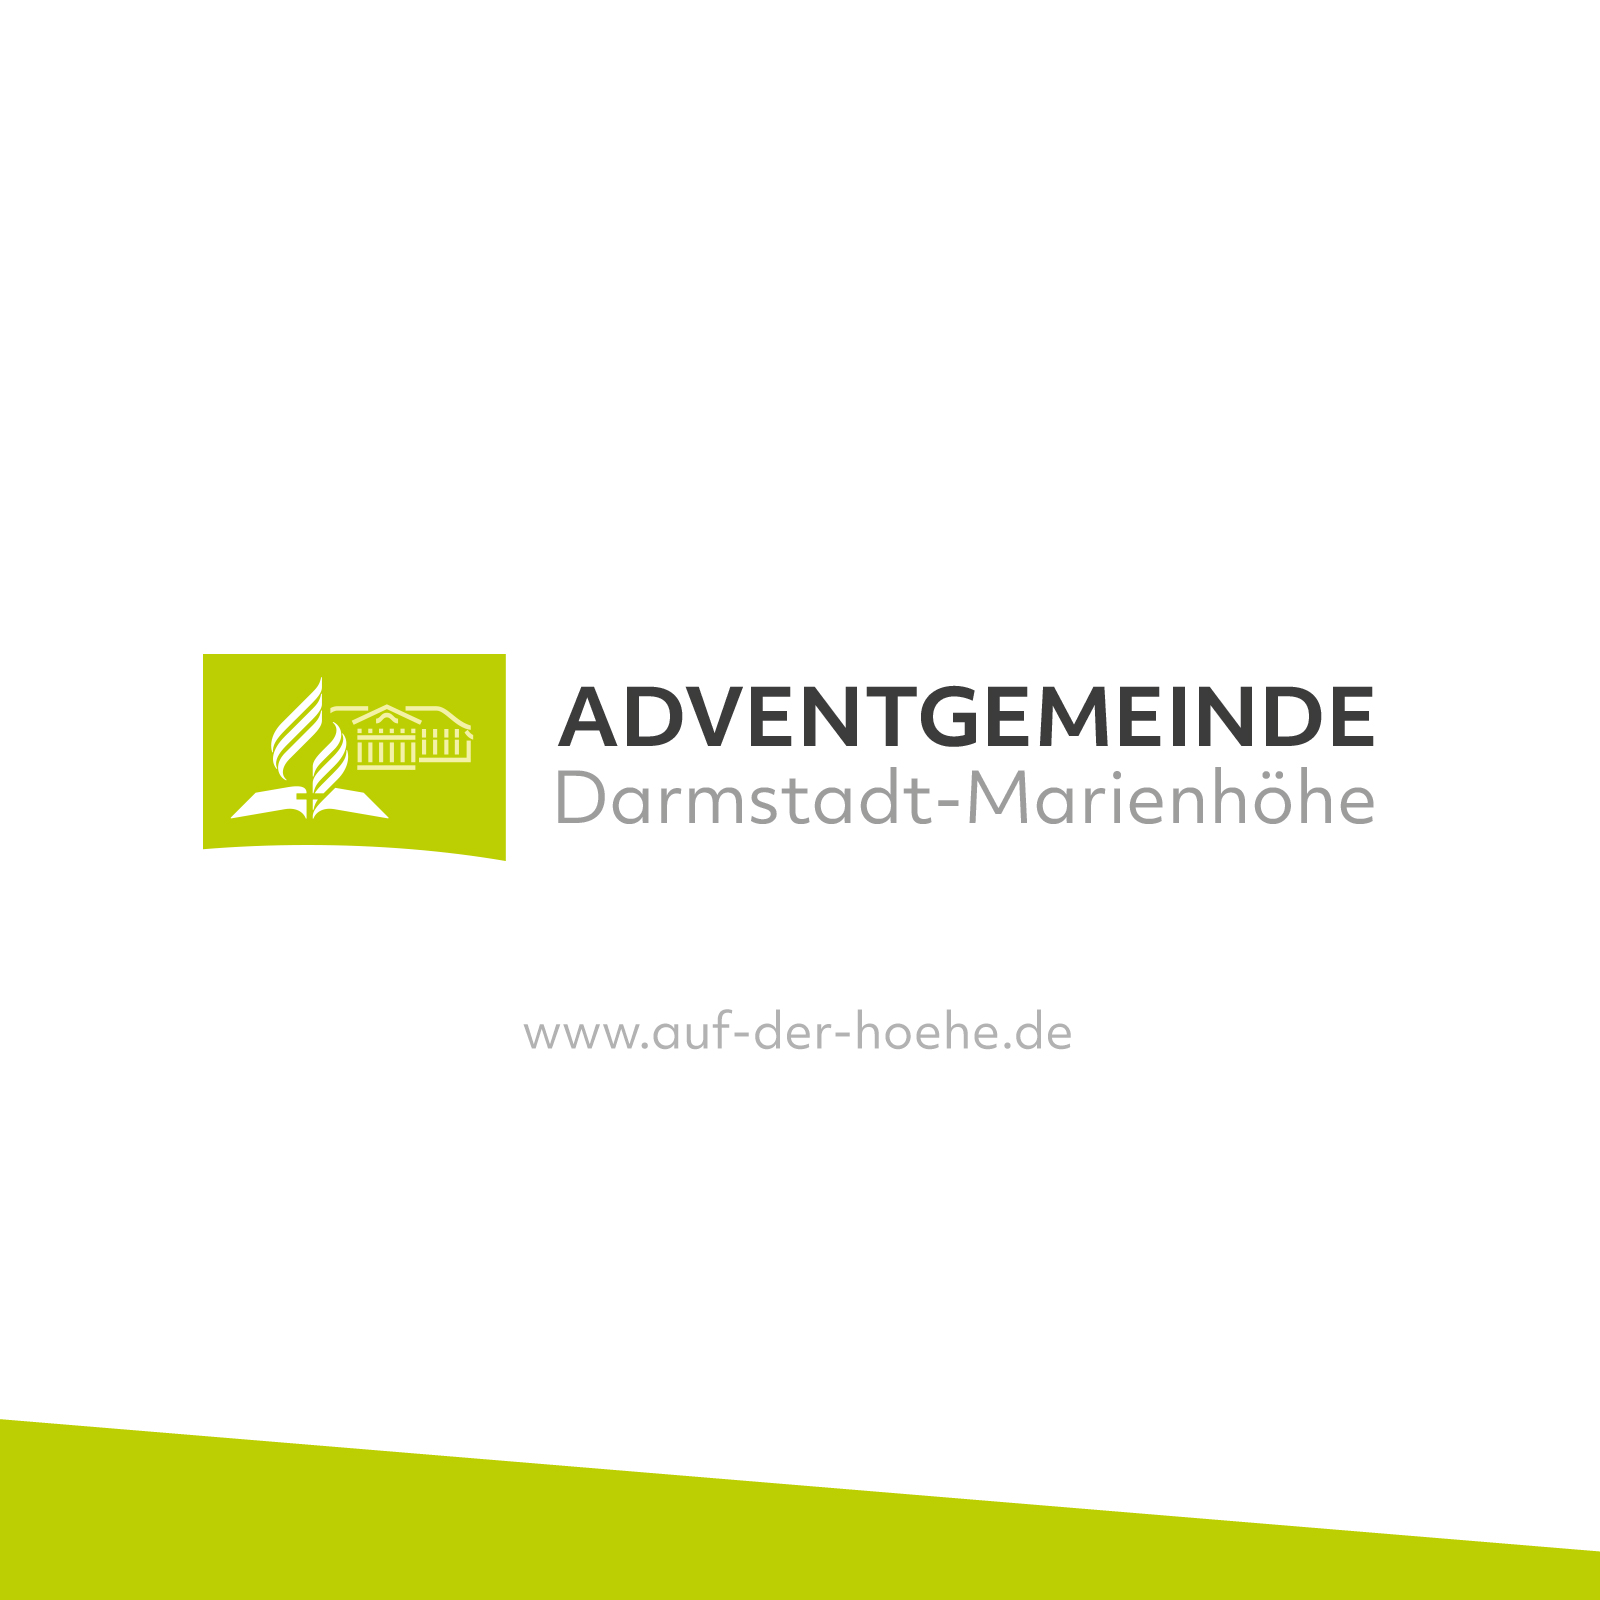 Adventgemeinde Darmstadt Marienhöhe - Audio Podcast